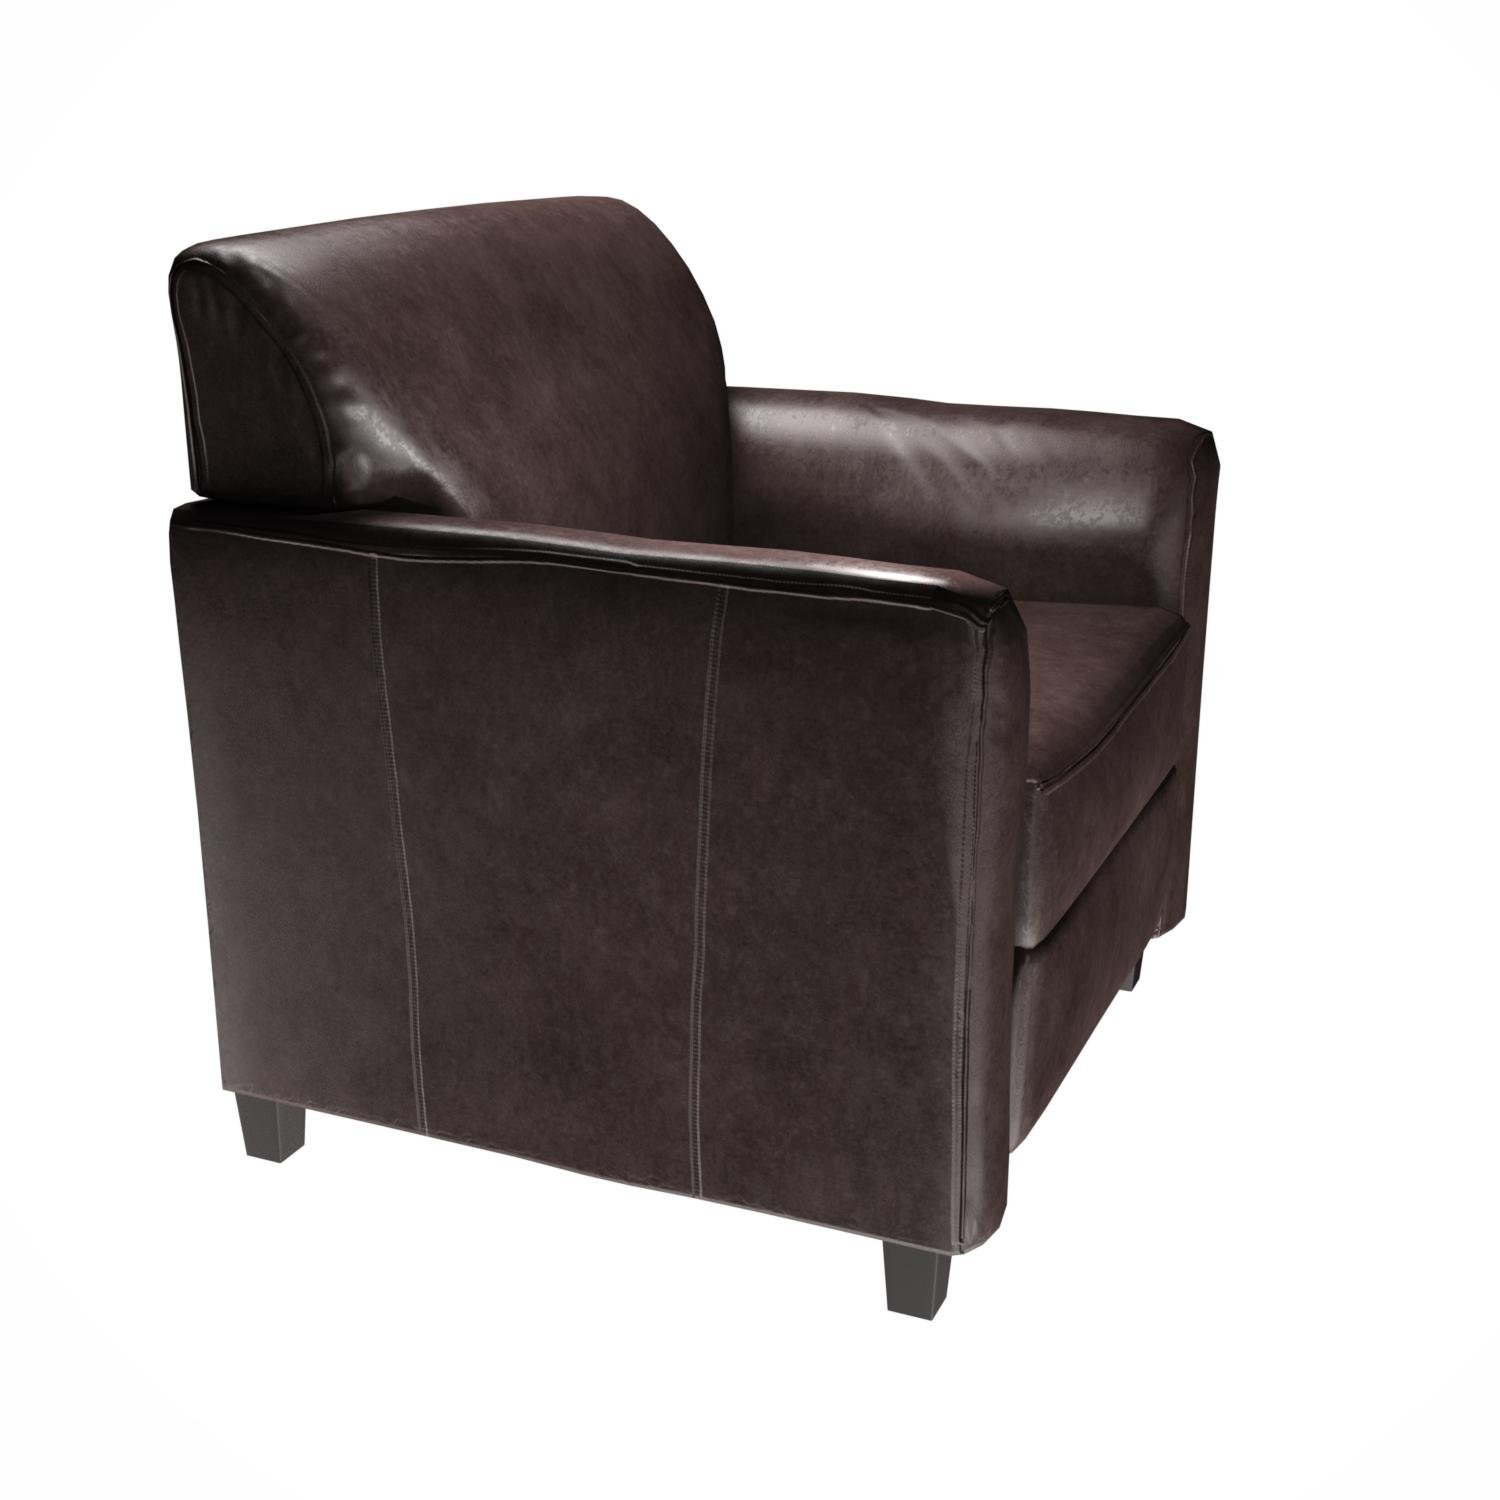 Flash Furniture HERCULES Diplomat Series Brown Leather Chair by Flash Furniture